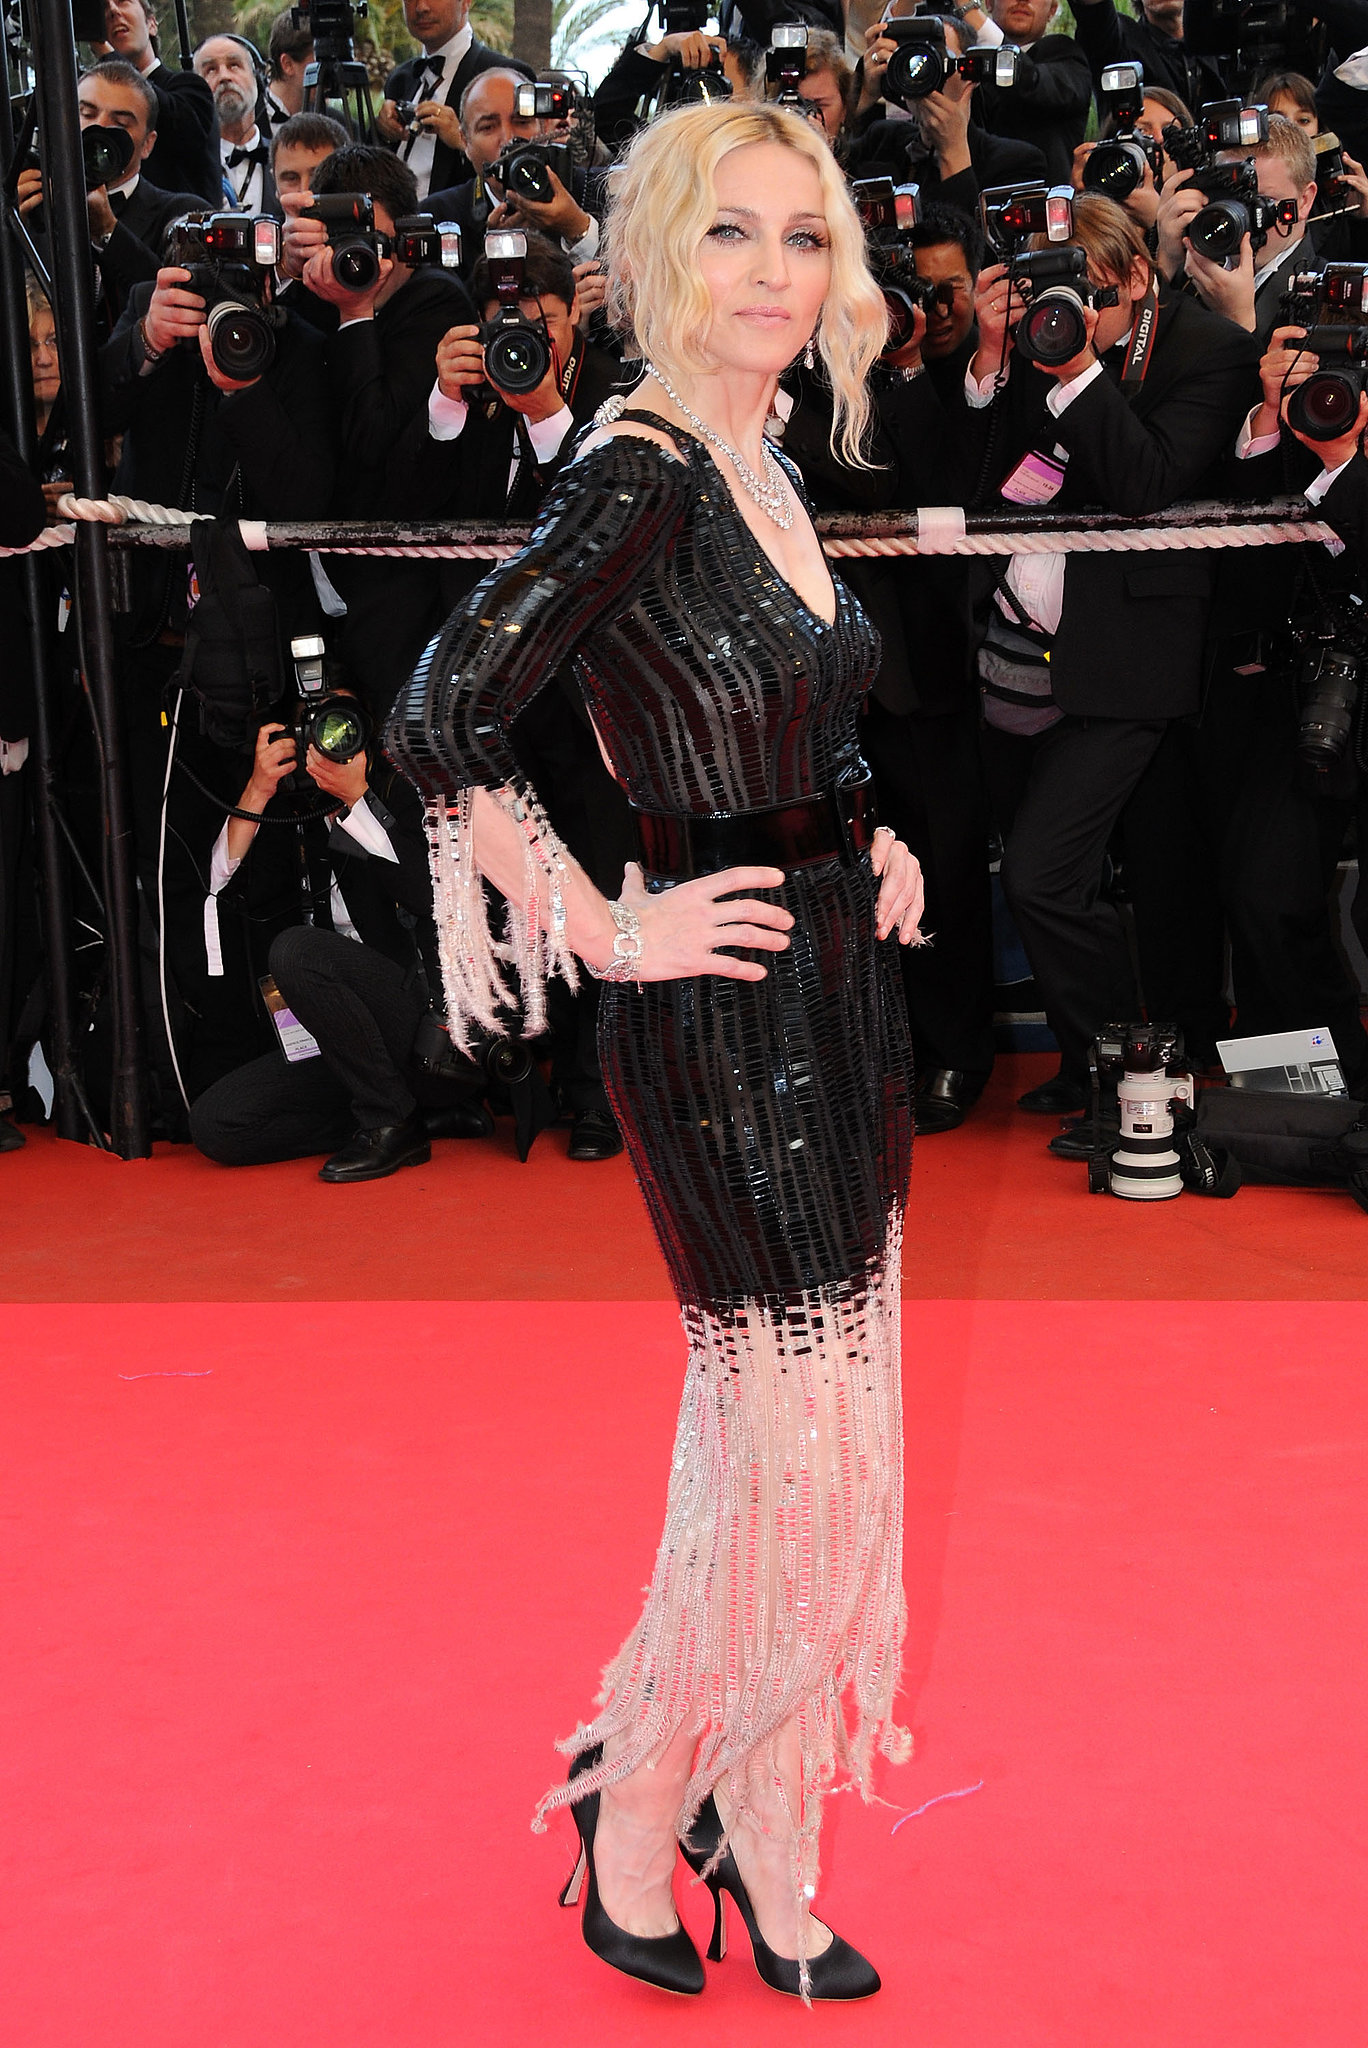 Madonna struck a pose at the I Am Because We Are premiere during the 61st Cannes Film Festival in 2008.